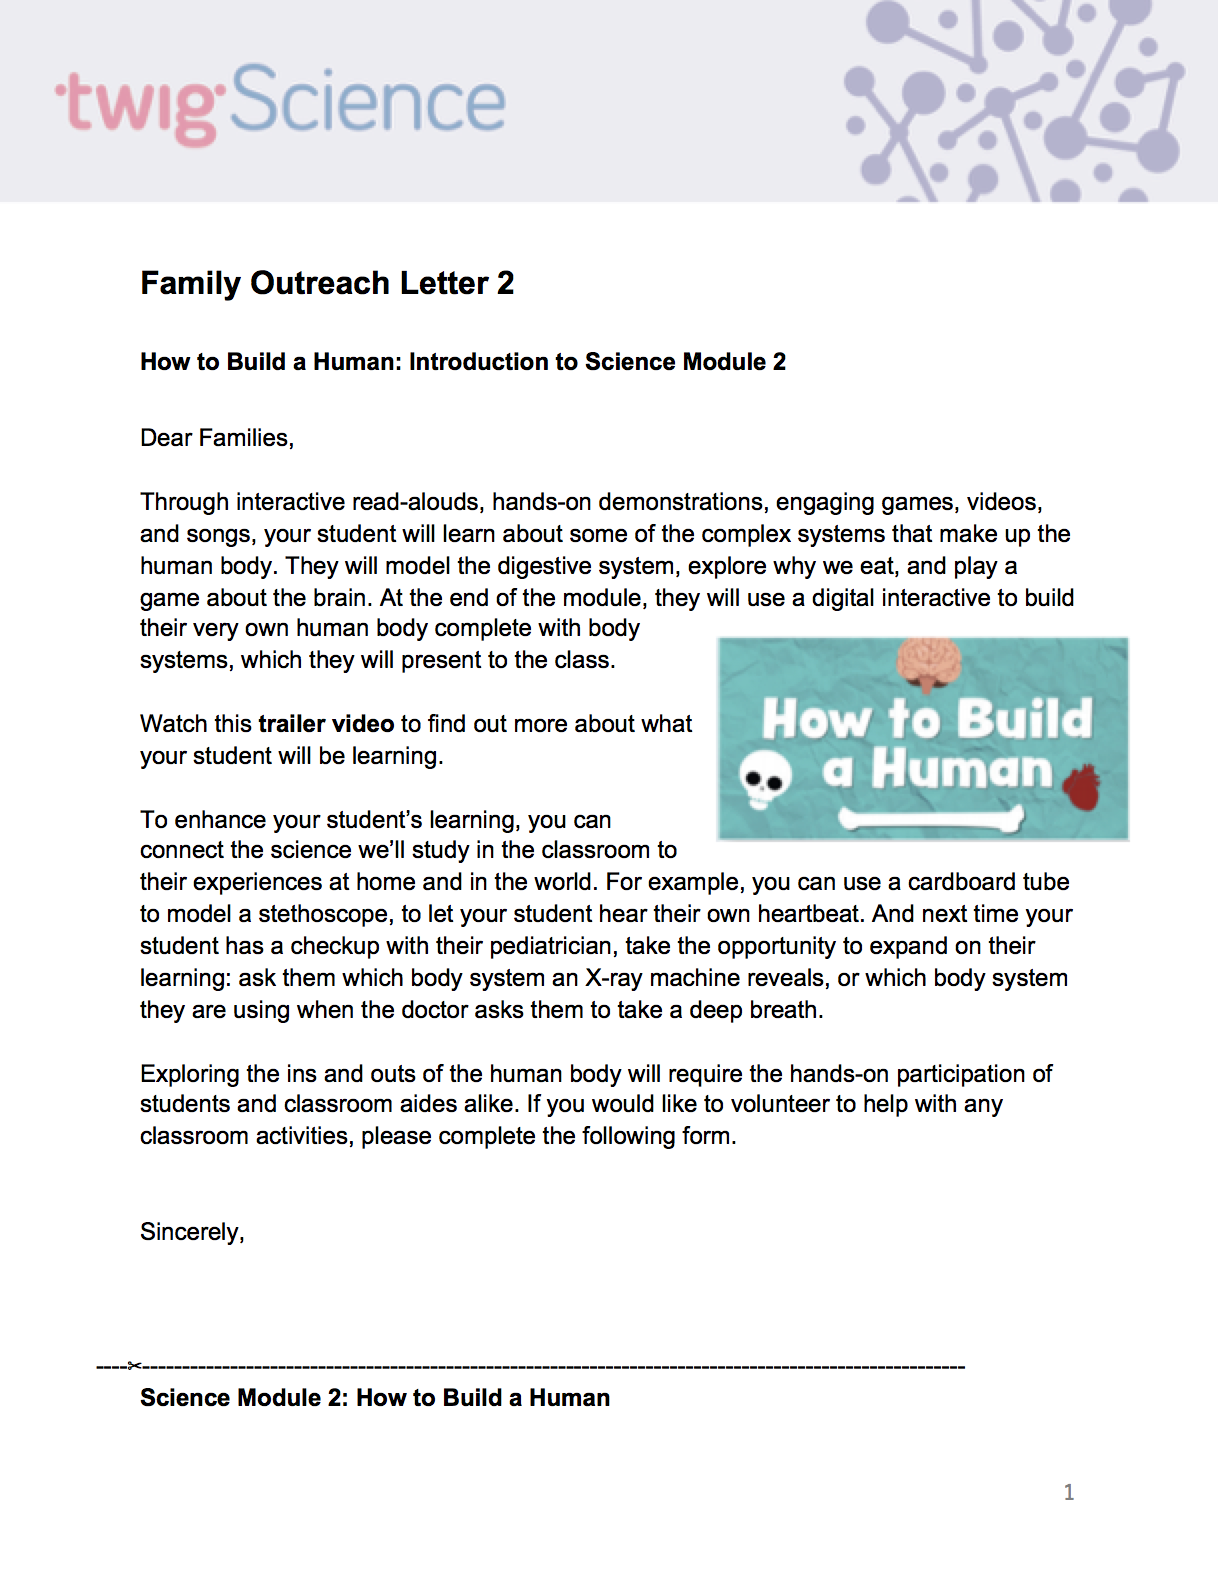 Family Outreach Letter 2